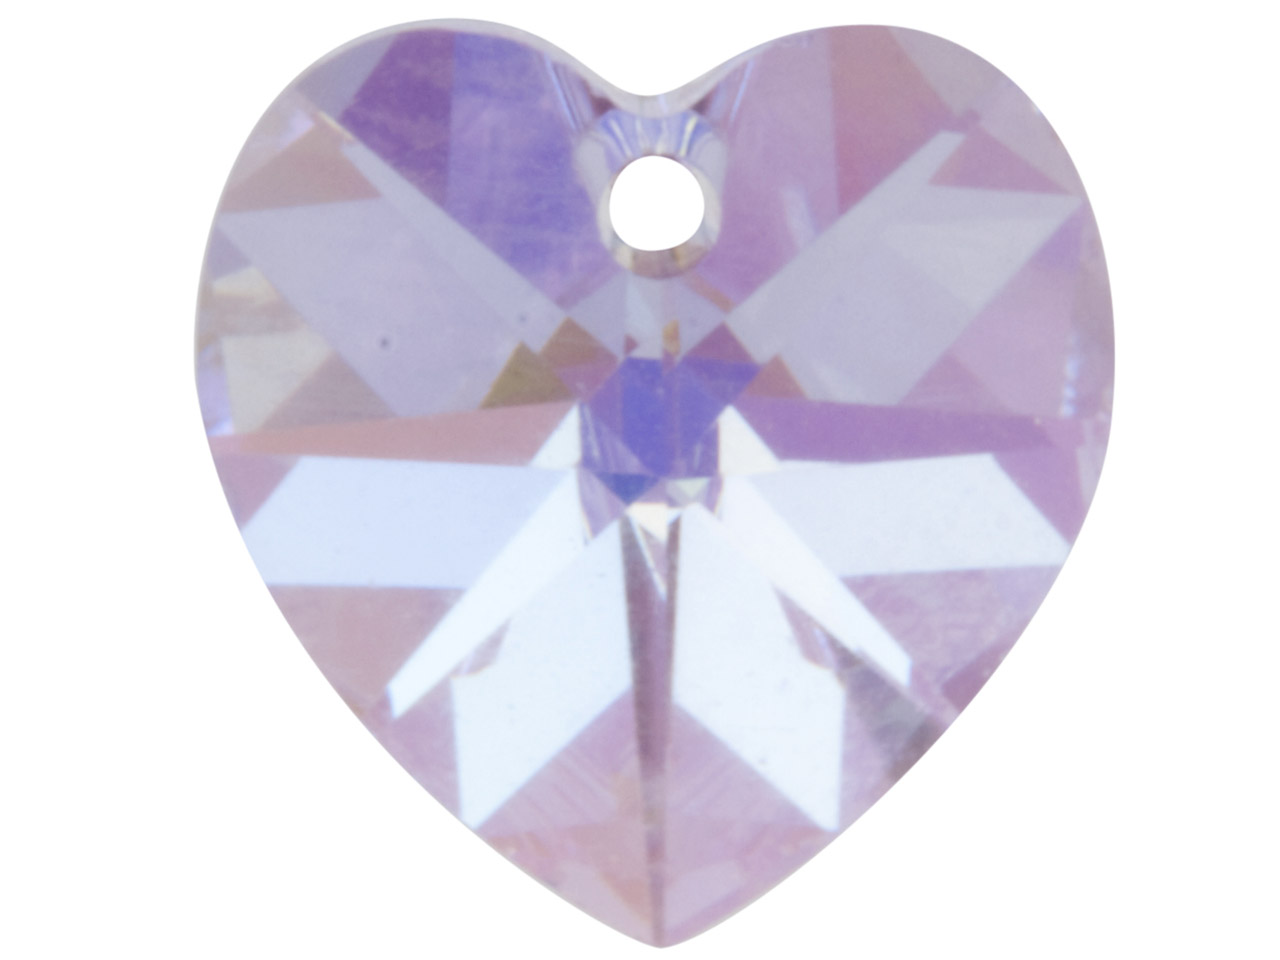 Swarovski Crystal Pack of 2 Heart, 6228, 10mm Violet Ab